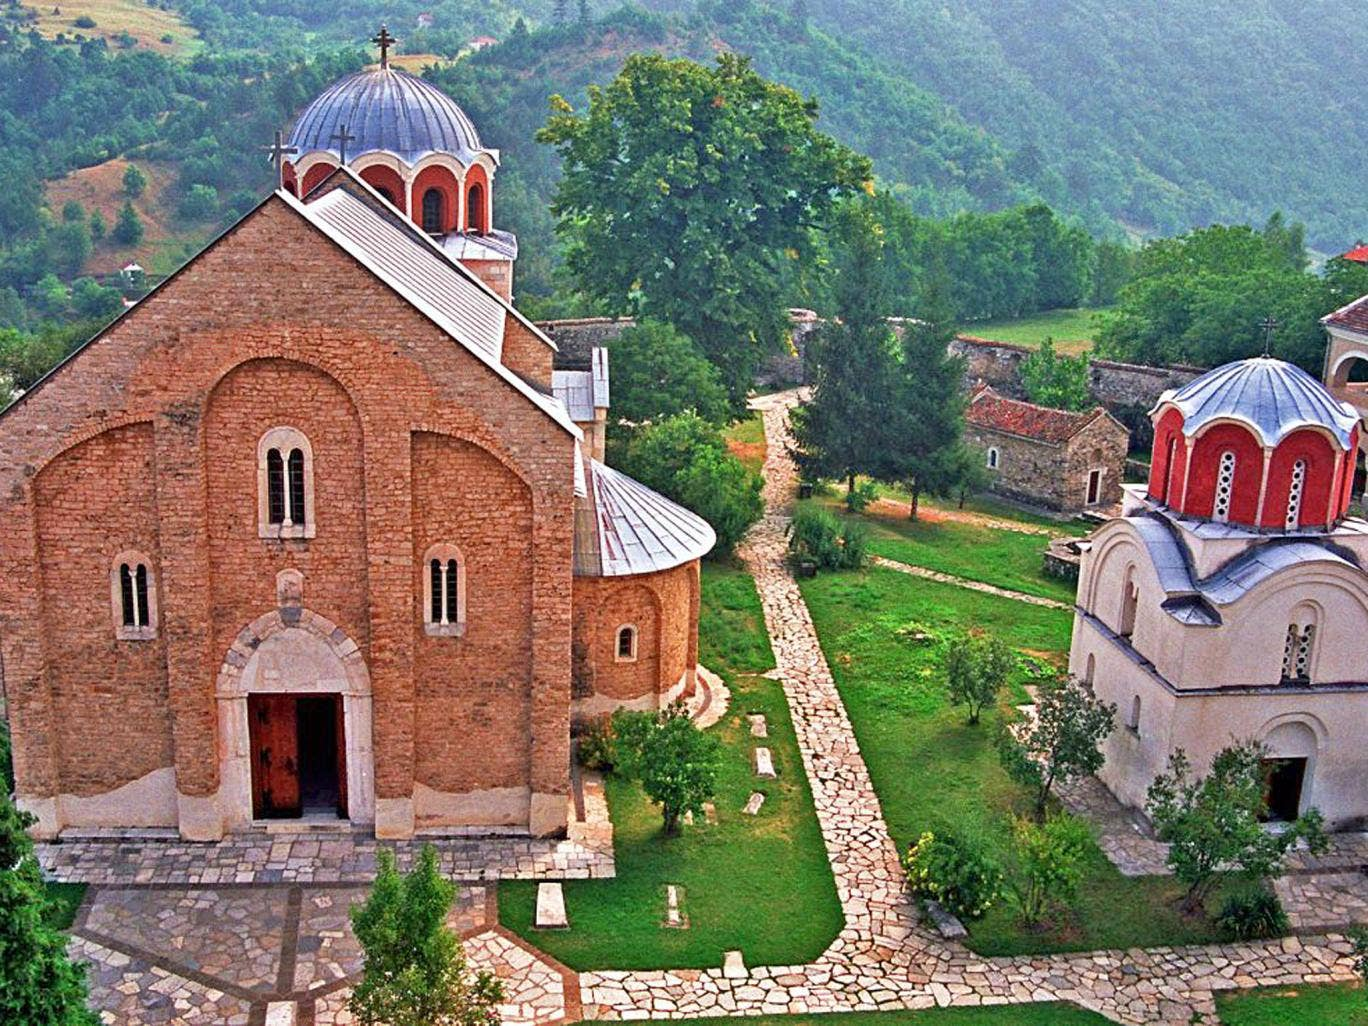 The monastery at Studenica is a world heritage site